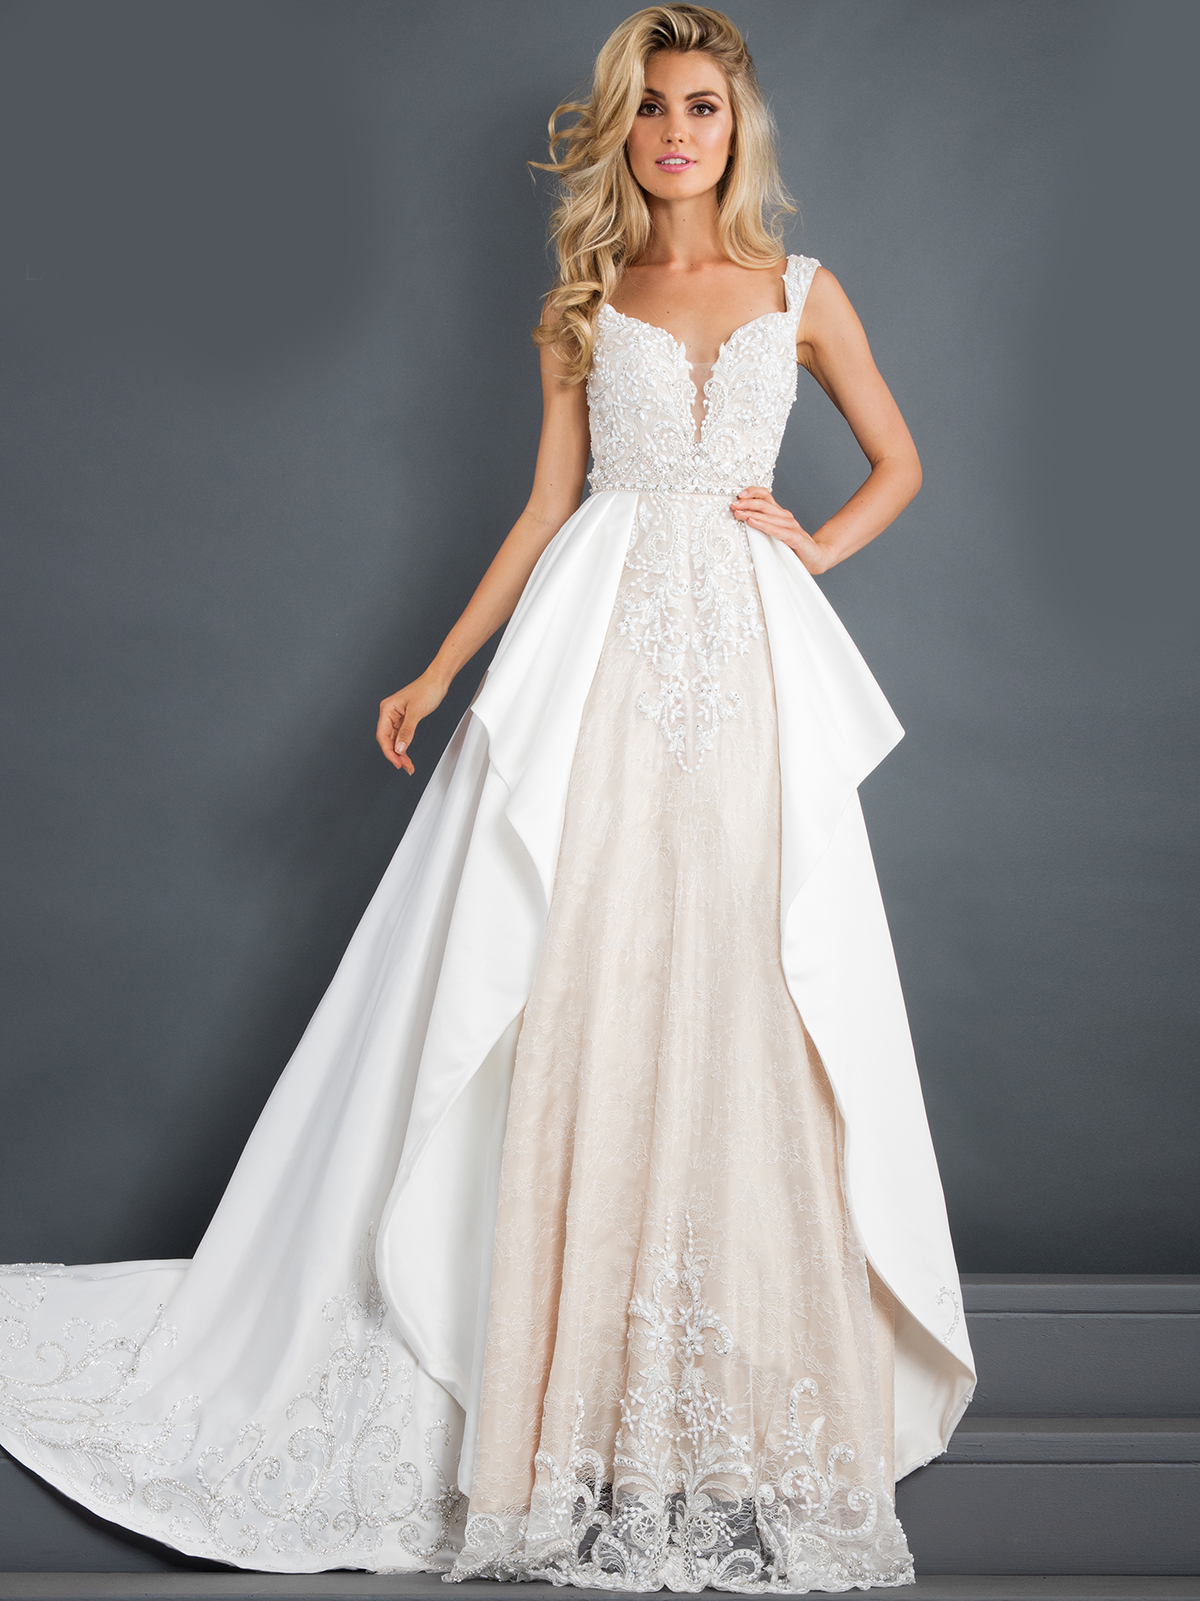 c43982edcb8 Prima Donna Pageant Gown 5942 Satin Overlay by Rachel Allan ...